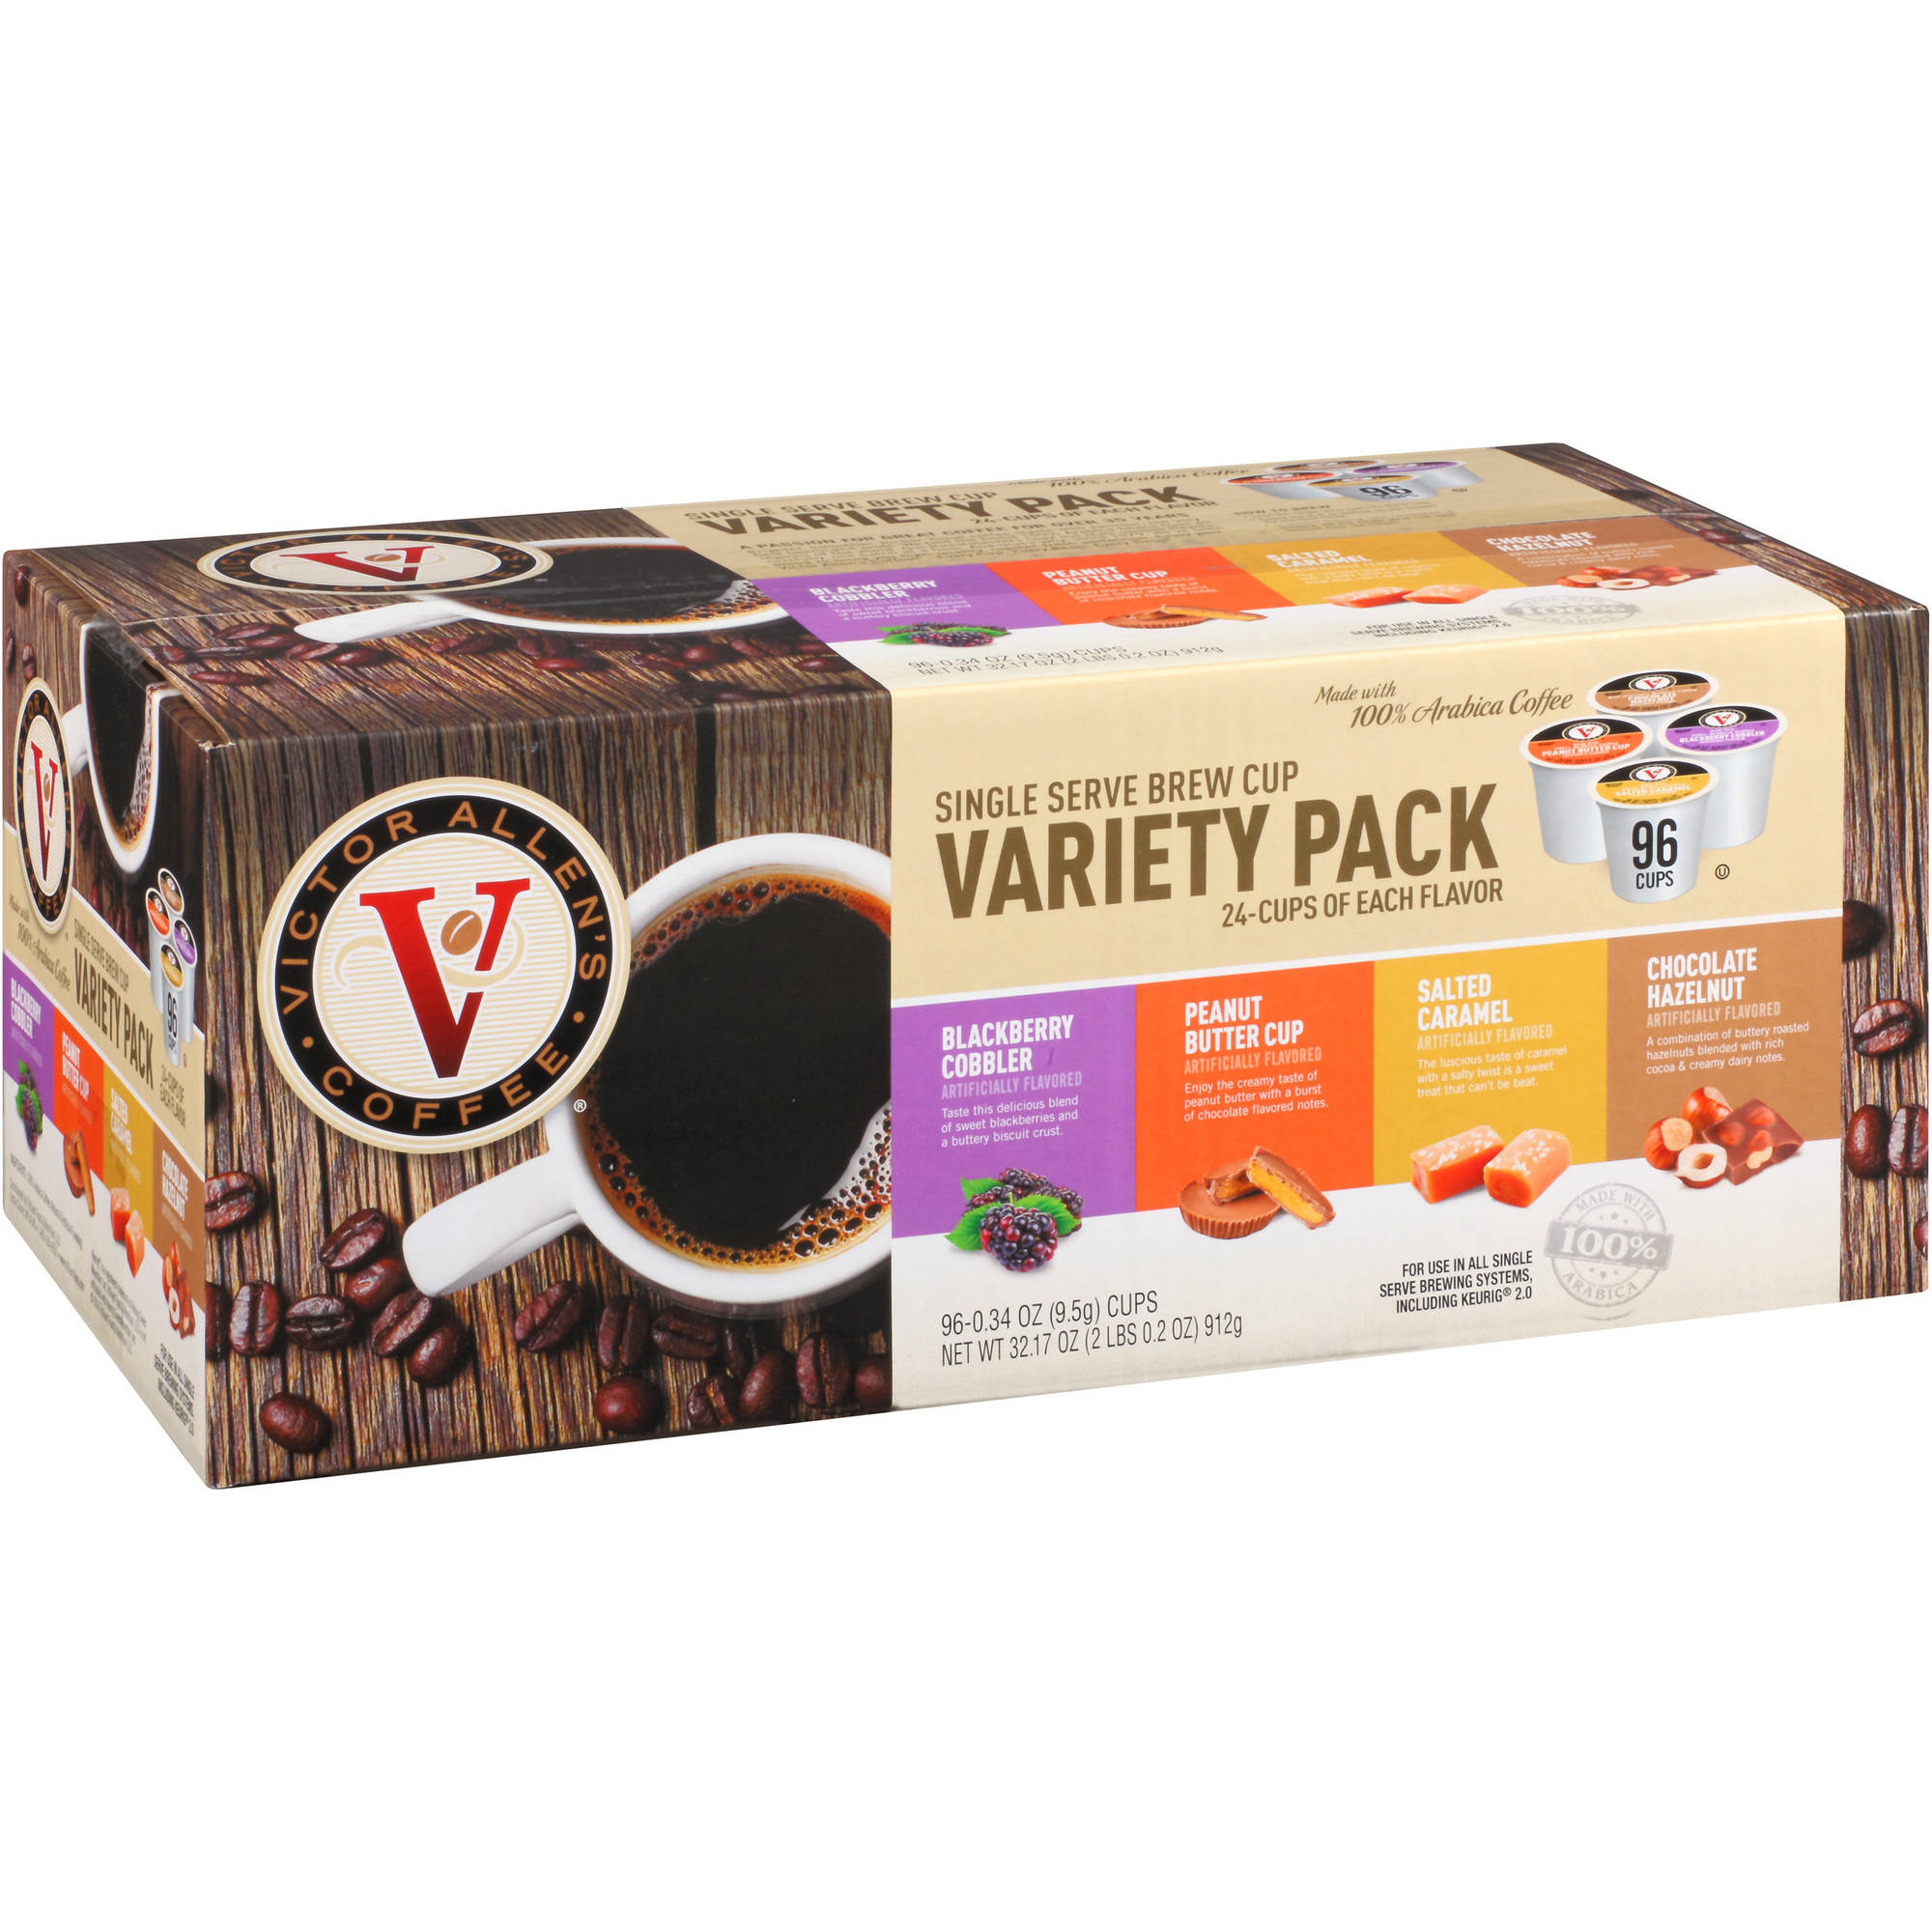 Victor Allen's Coffee Variety Pack Coffee Single Serve Brew Cups, .34 oz, 96 count